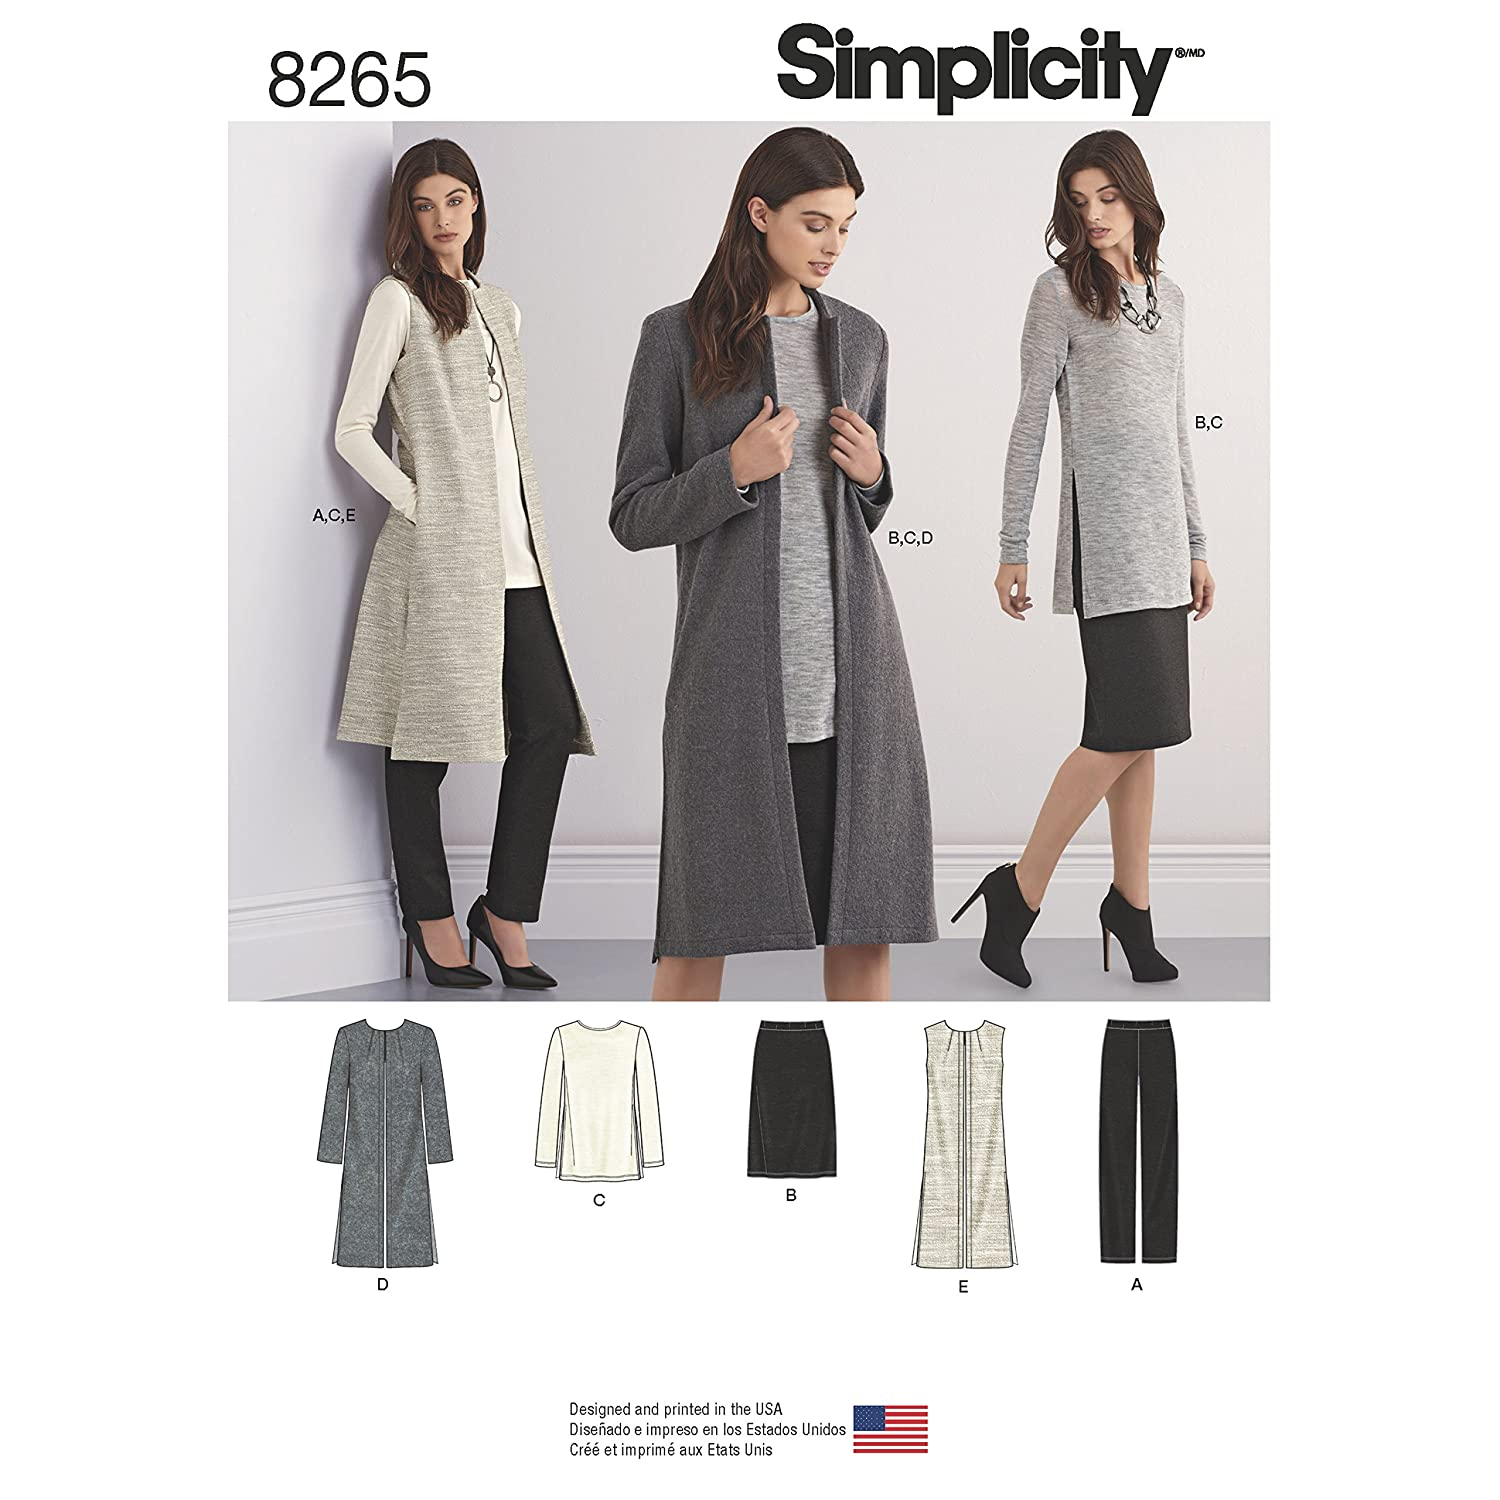 Simplicity Patterns 8265 Miss Petite Separates, Size: H5 (6-8-10-12-14) OUTLOOK GROUP CORP US8265H5